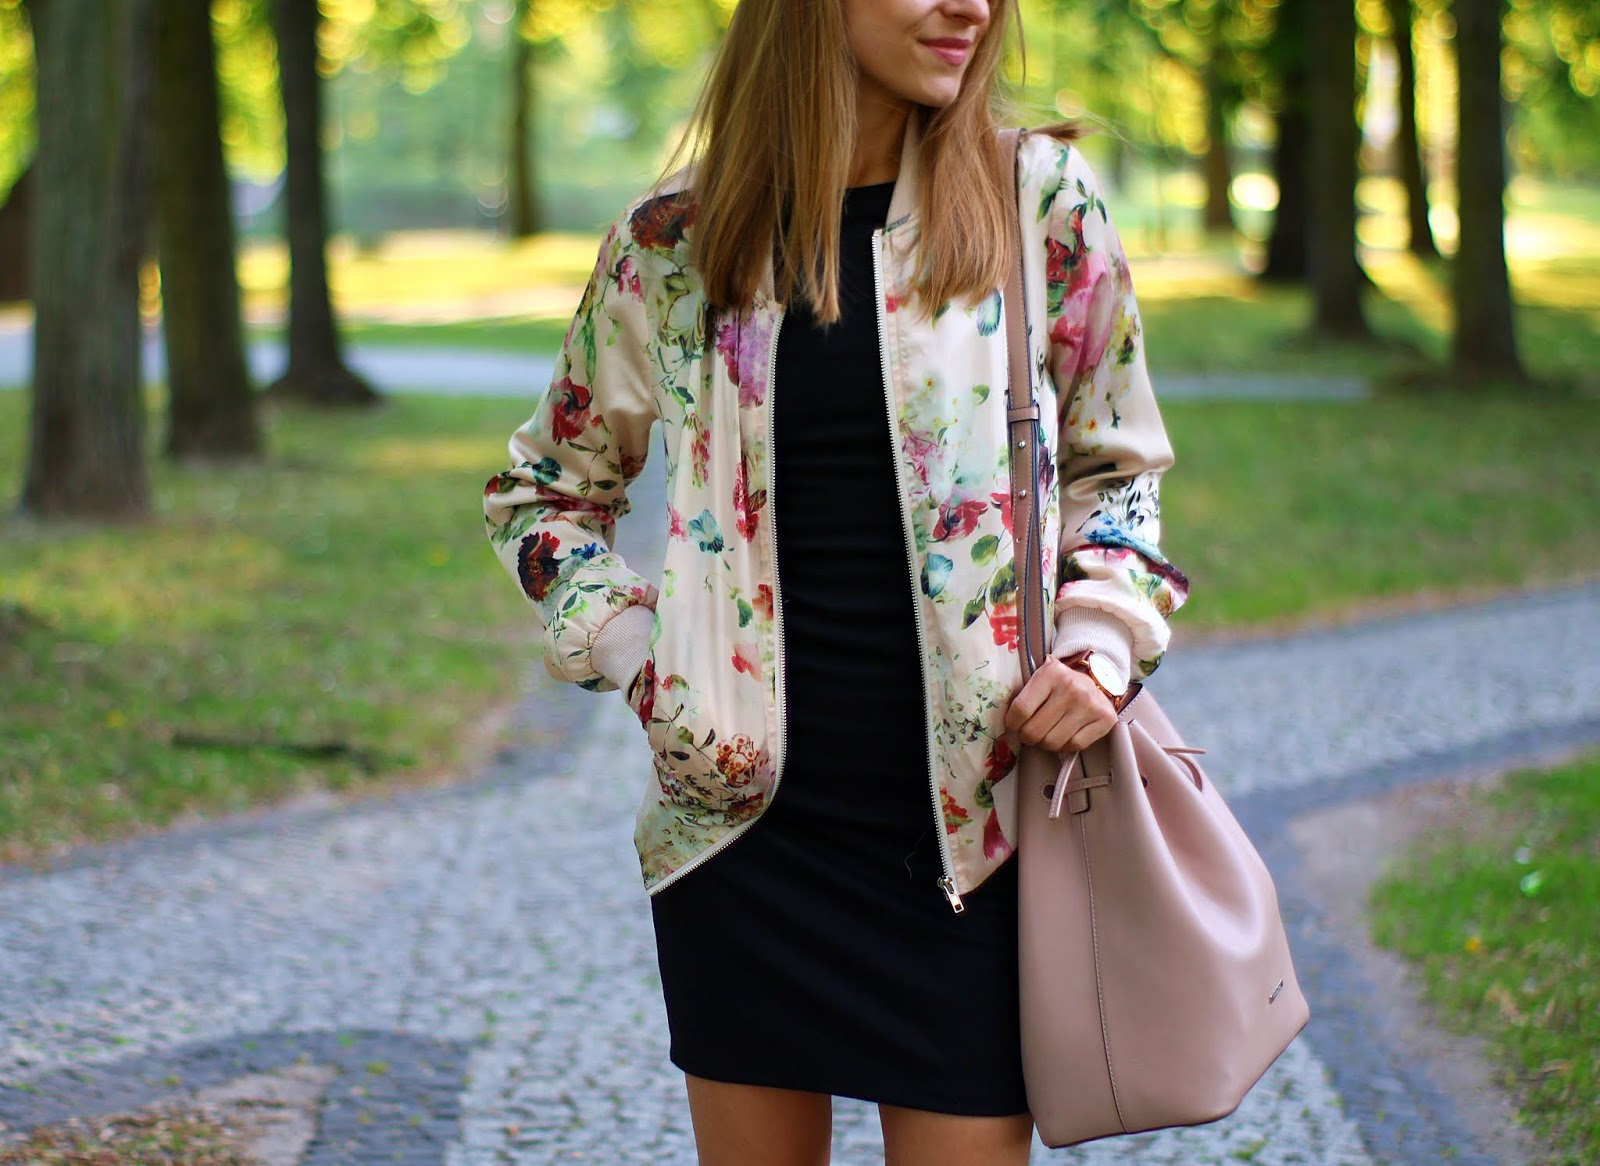 Black dress and flower bomber jacket